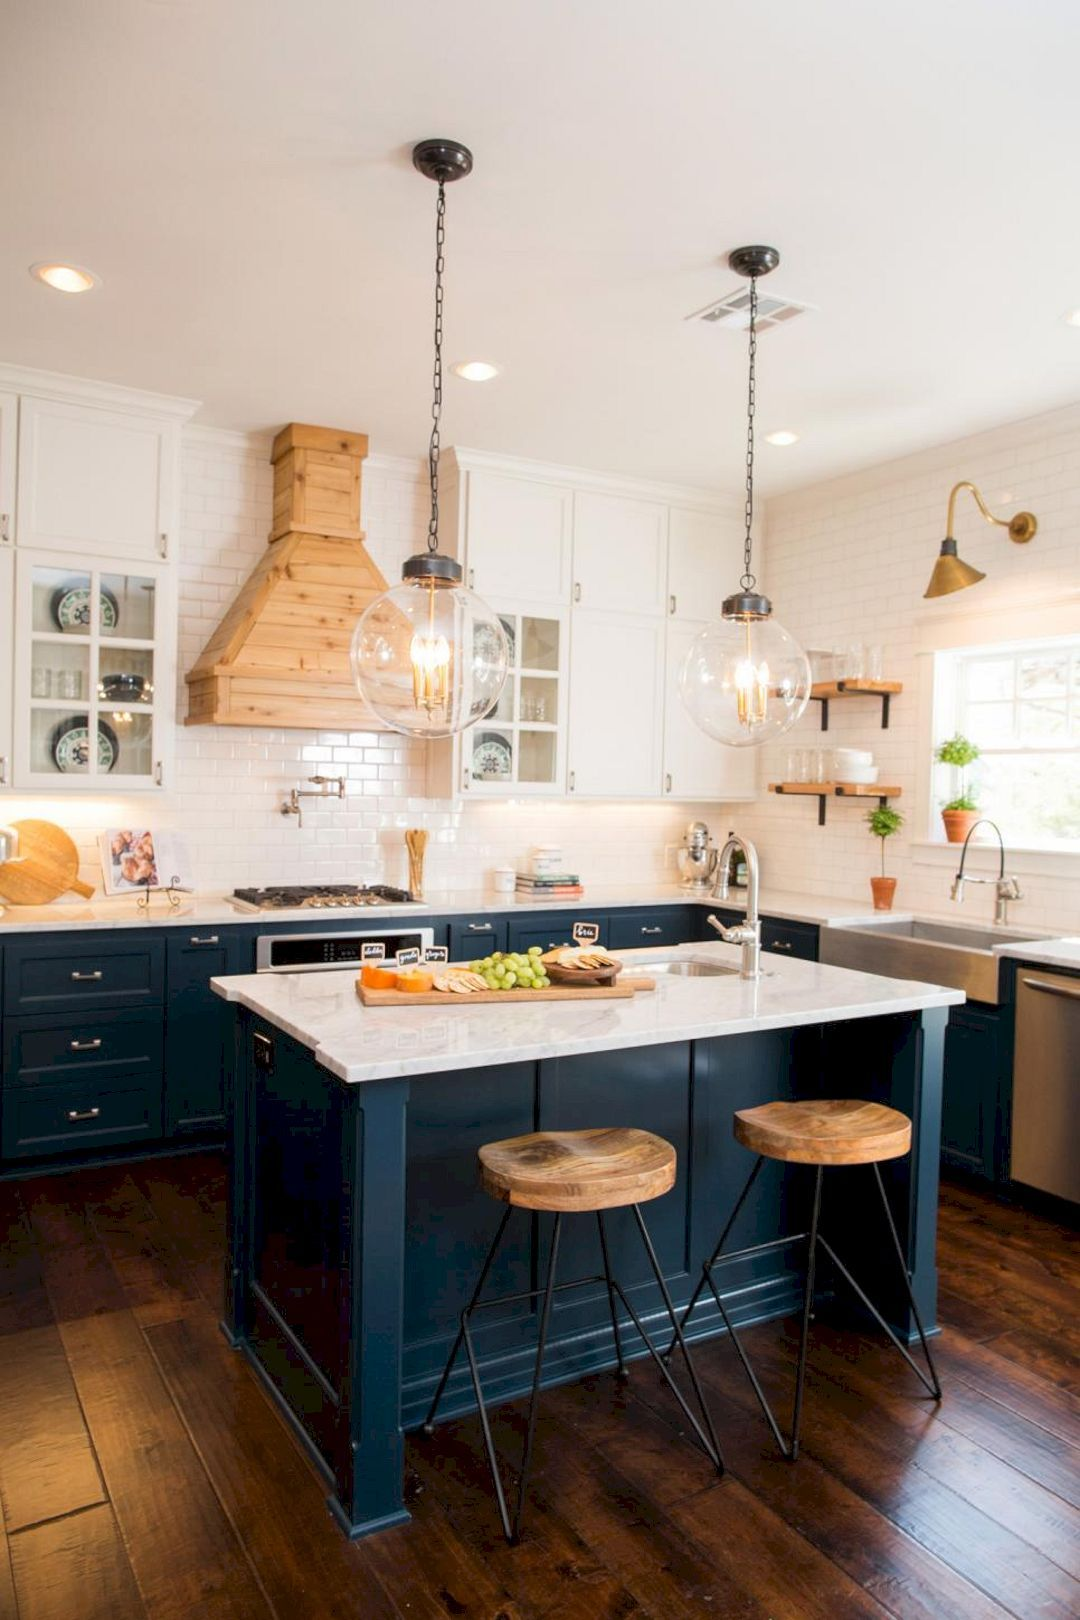 Explore Transitional Home Decor And More! Most Beautiful Scandinavian Style Interior  Ideas ...